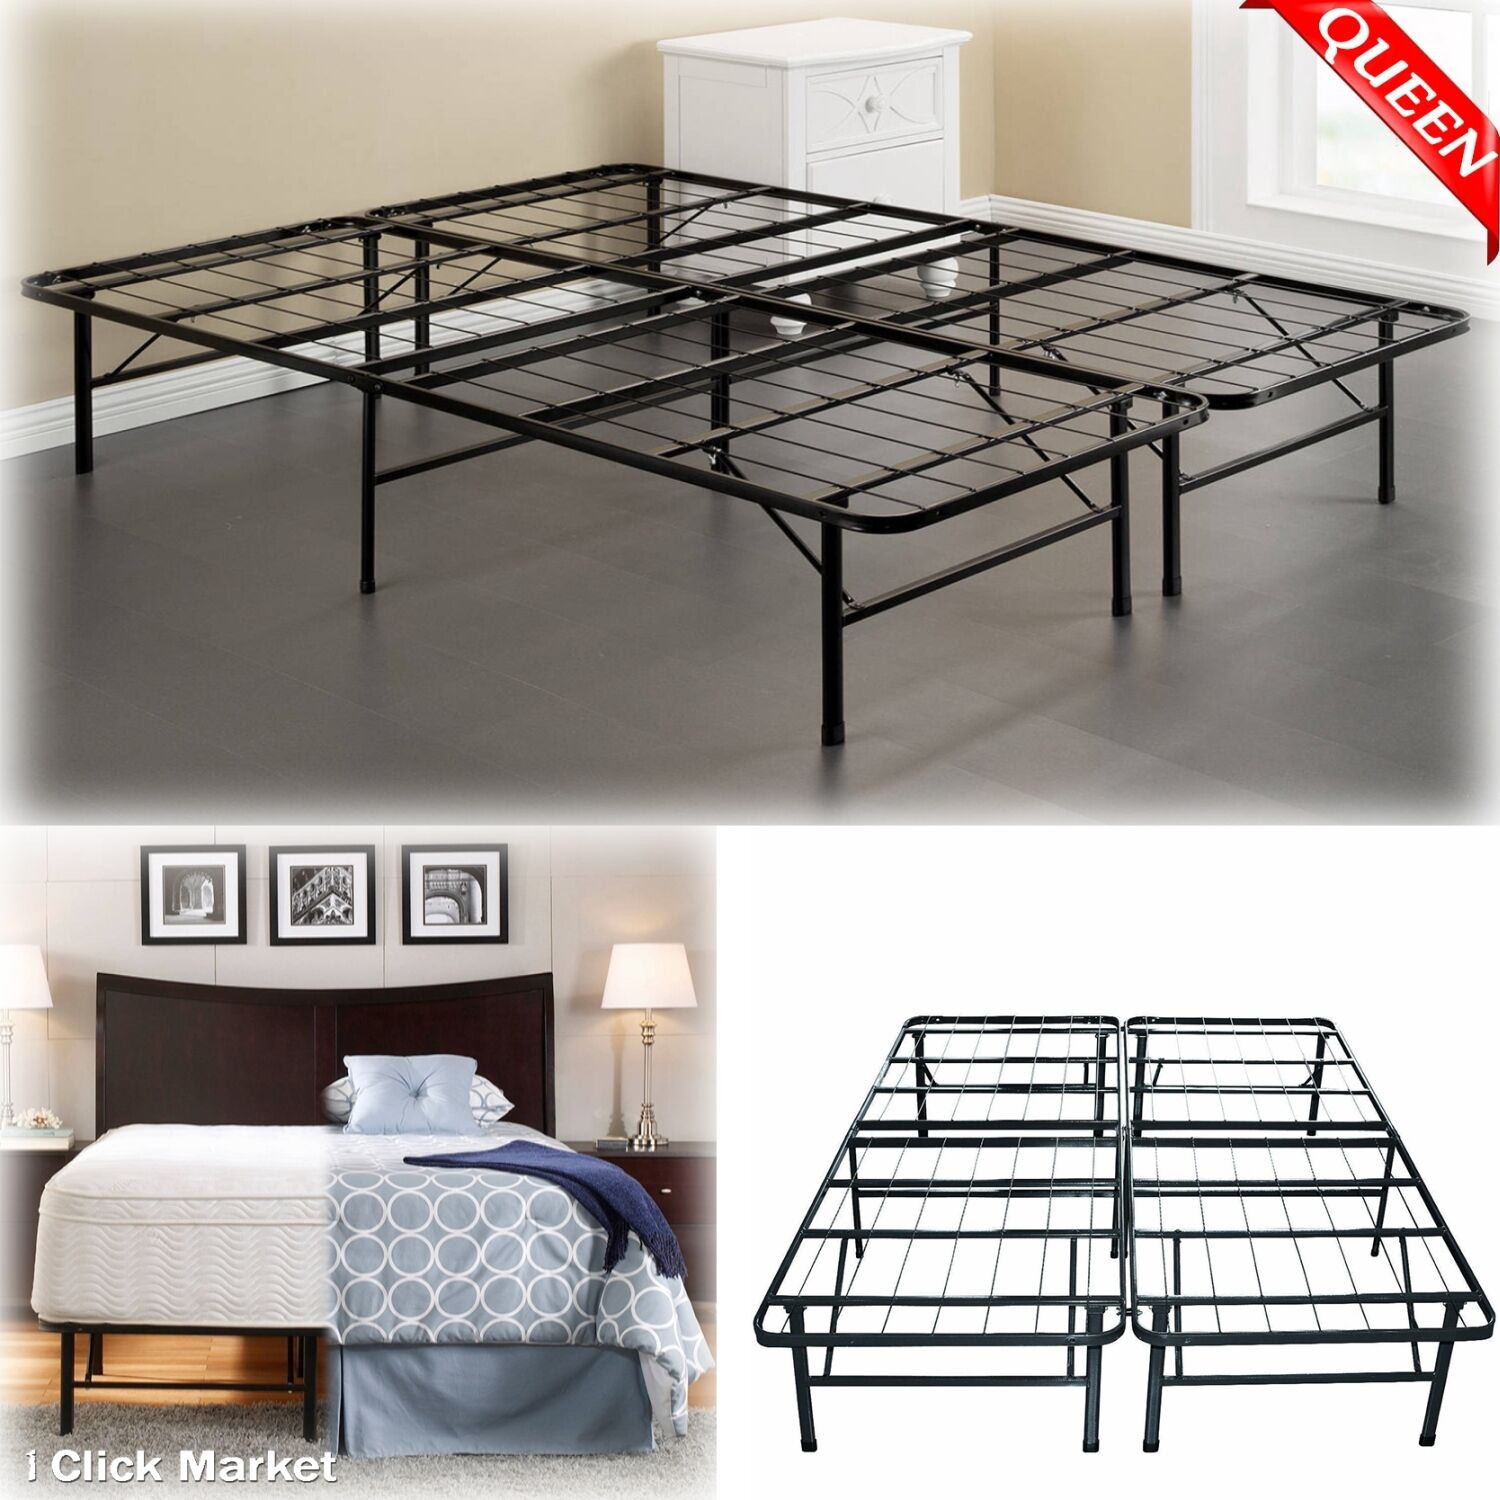 frame heavy duty metal platform